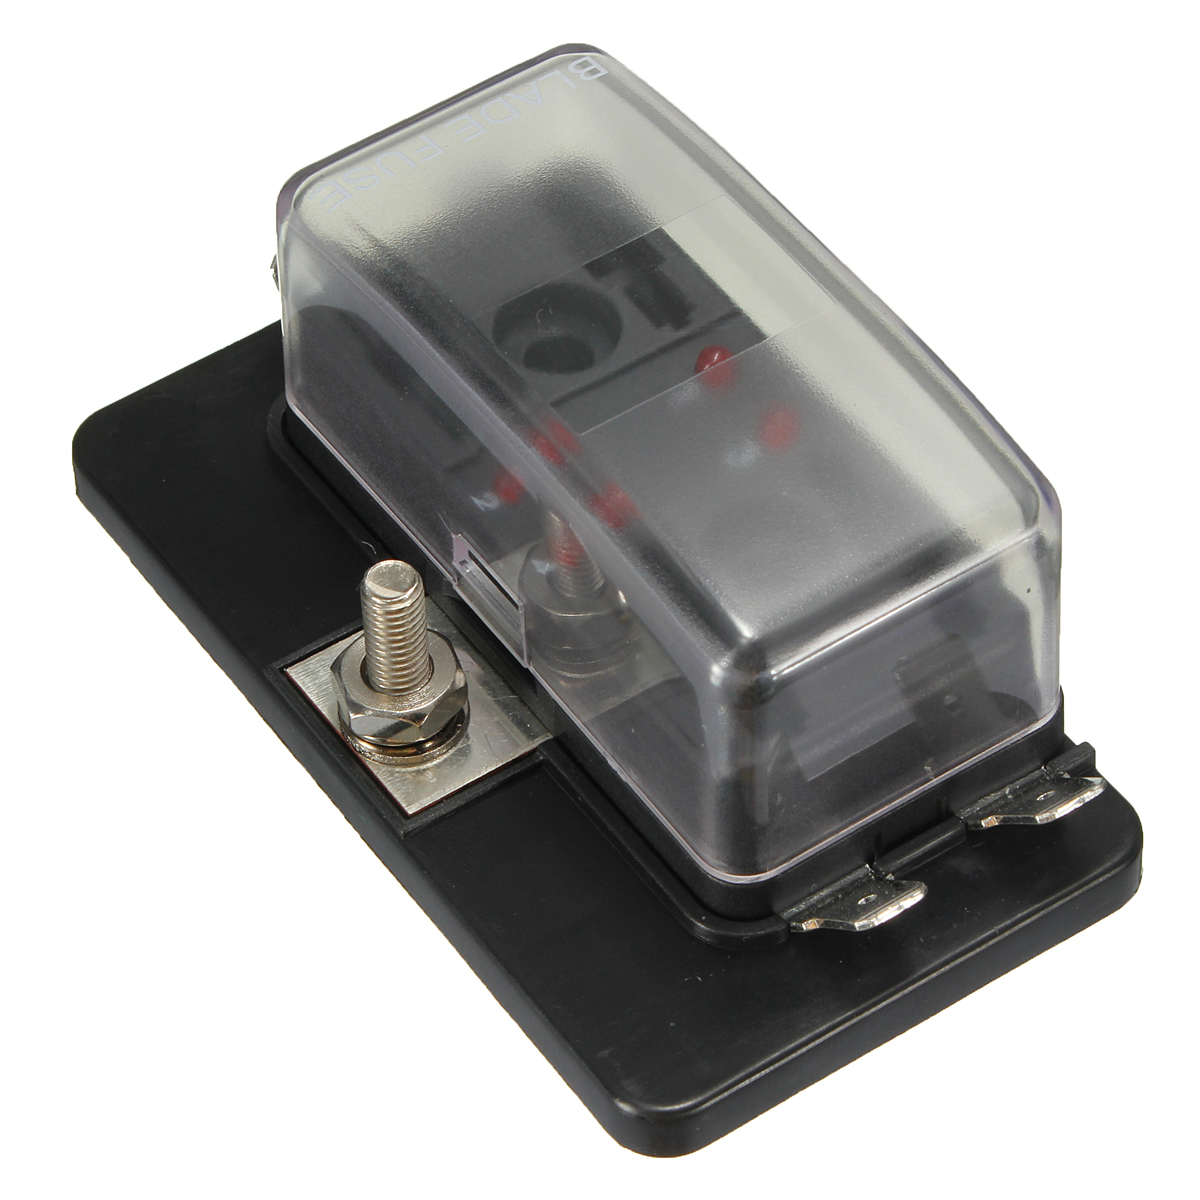 Fuse Box For Small Boat : Power in way fusebox fuse blade box fuseholder kit for